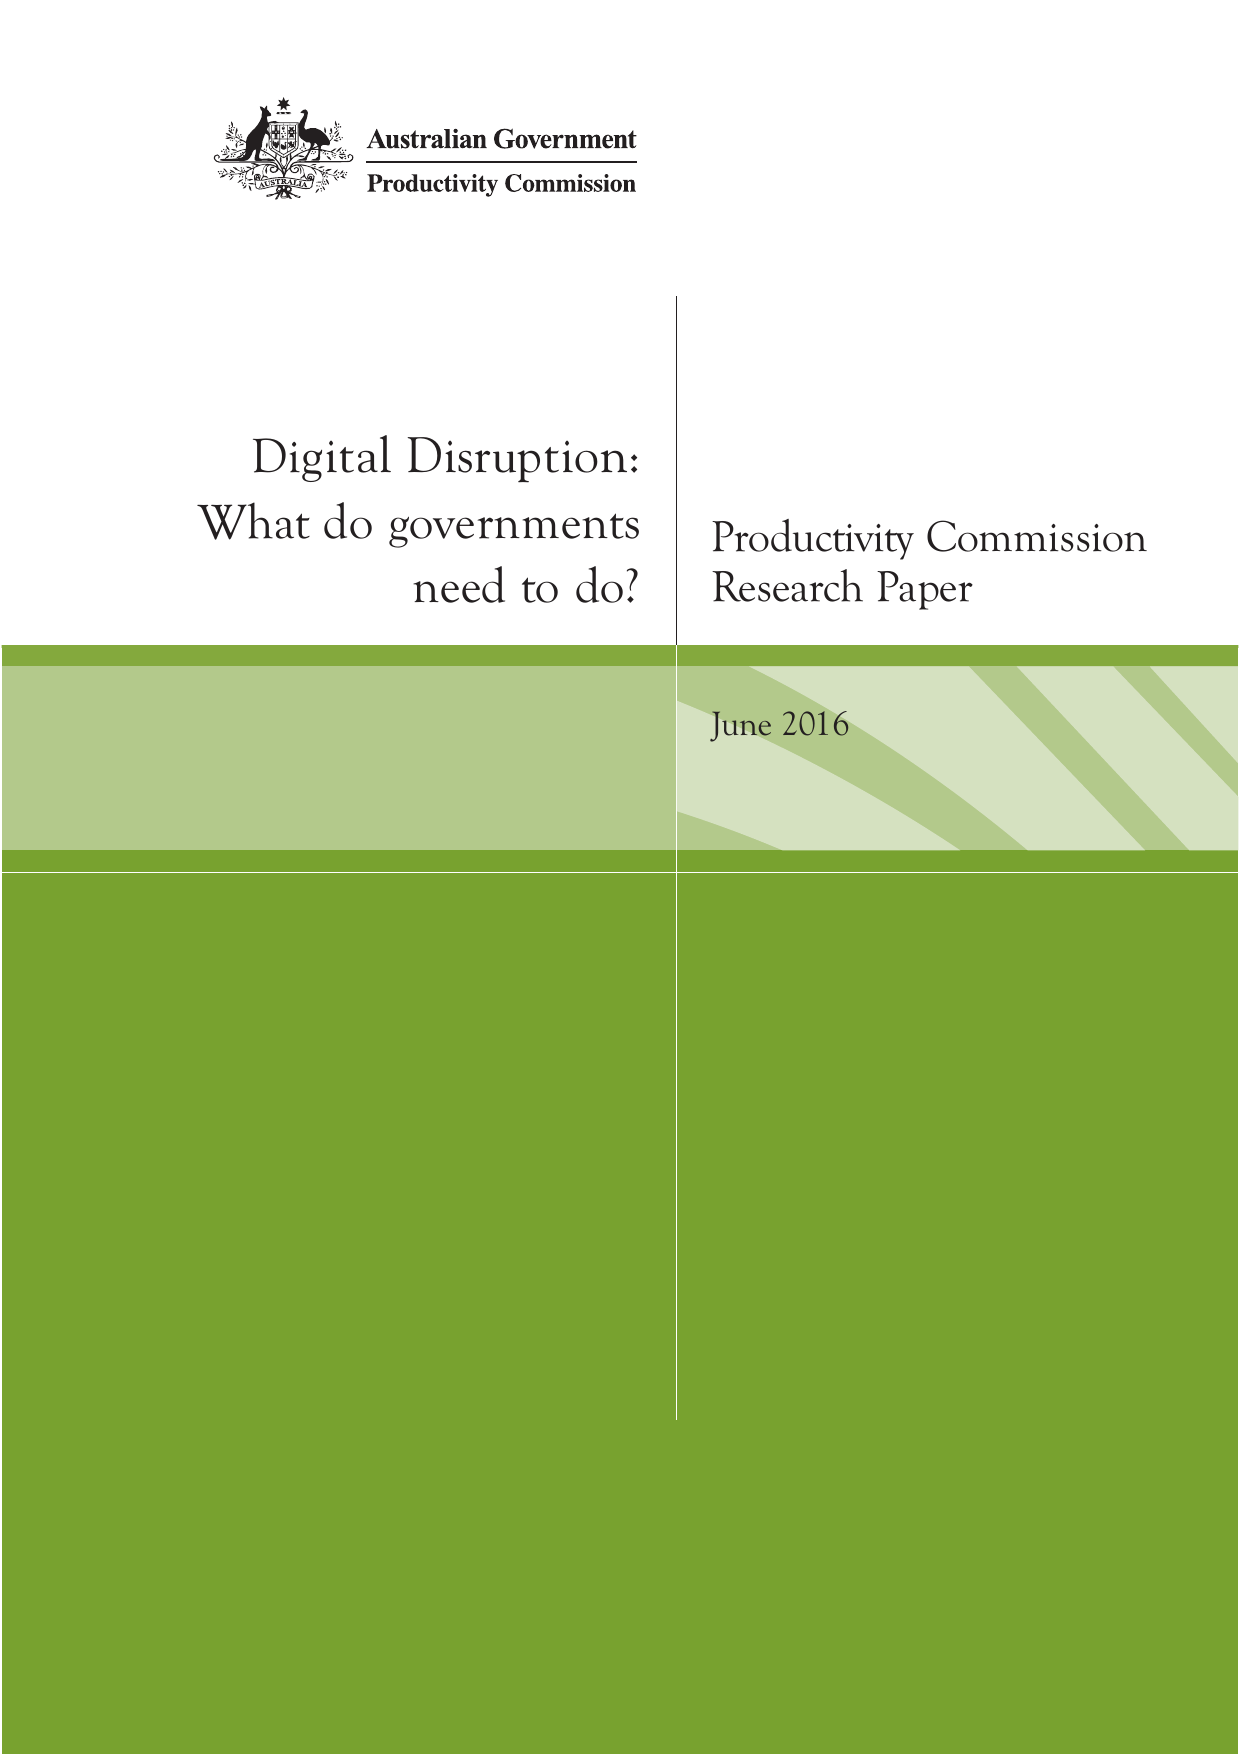 Digital Disruption: What do governments need to do?